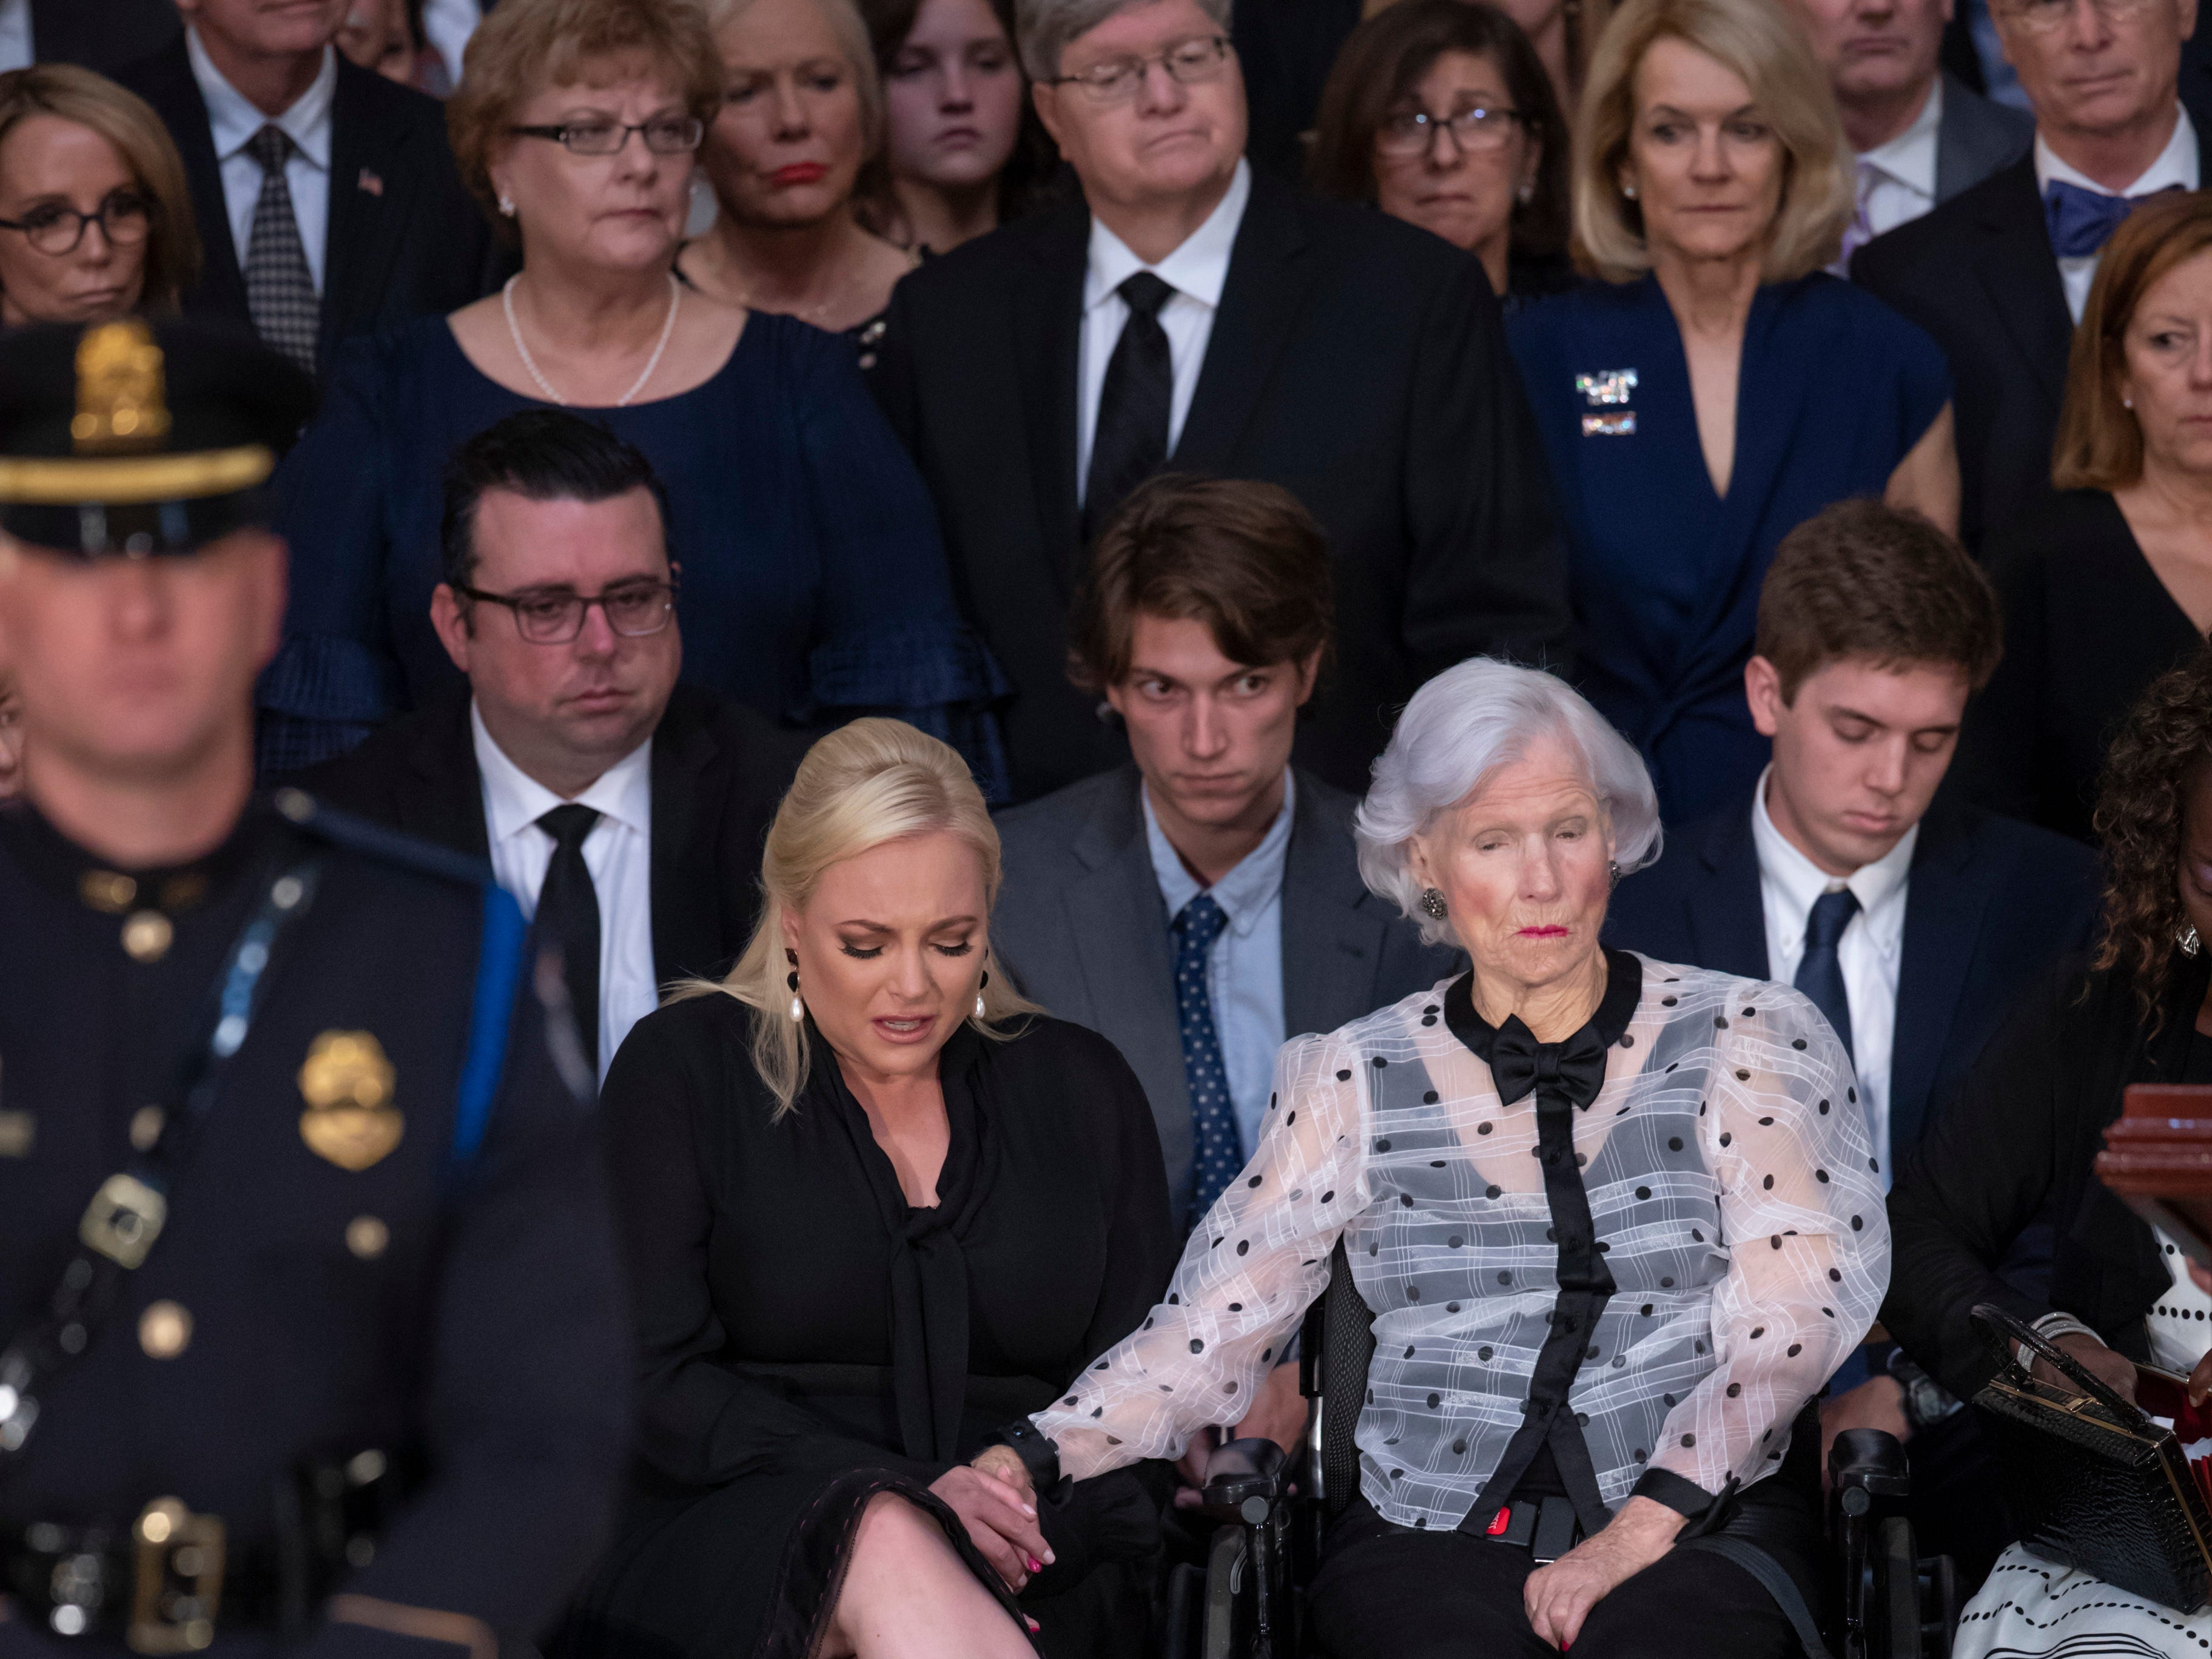 Sen. John McCain's daughter Meghan McCain is comforted by her 106-year-old grandmother Roberta McCain during a memorial at the U.S. Capitol rotunda Aug. 31, 2018, in Washington.